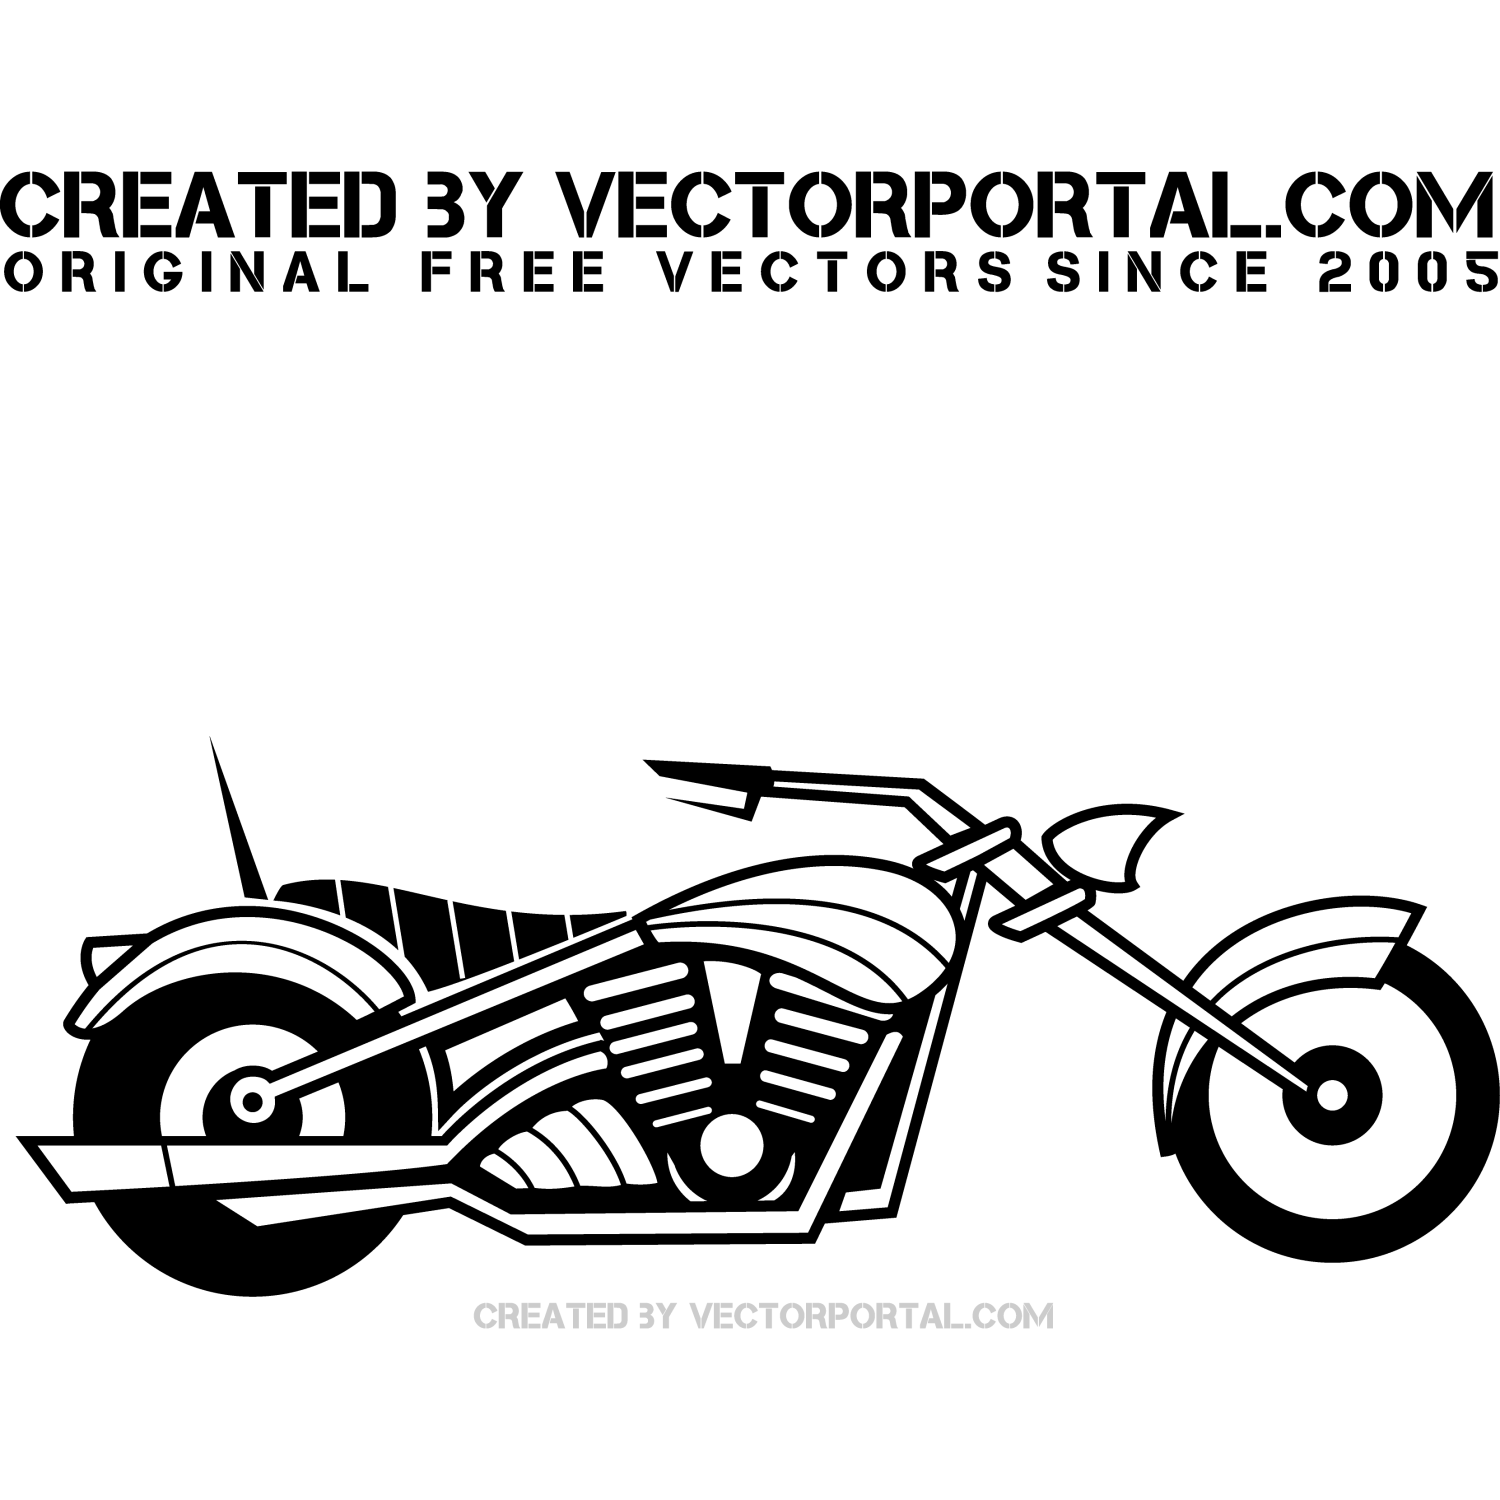 Vector illustration of a motorcycle